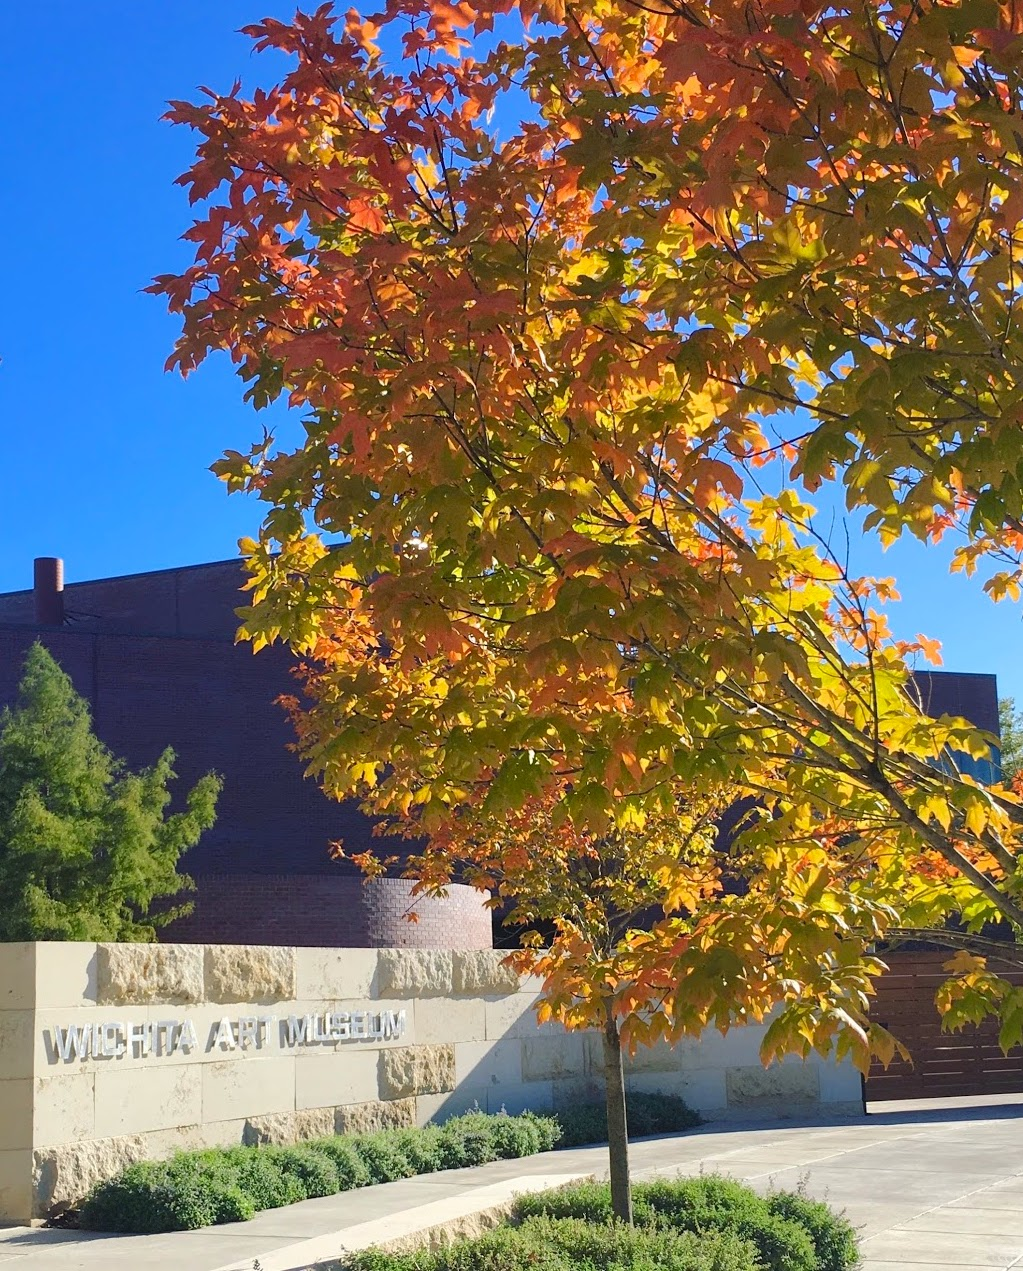 Fall Leaves Downtown Wichita